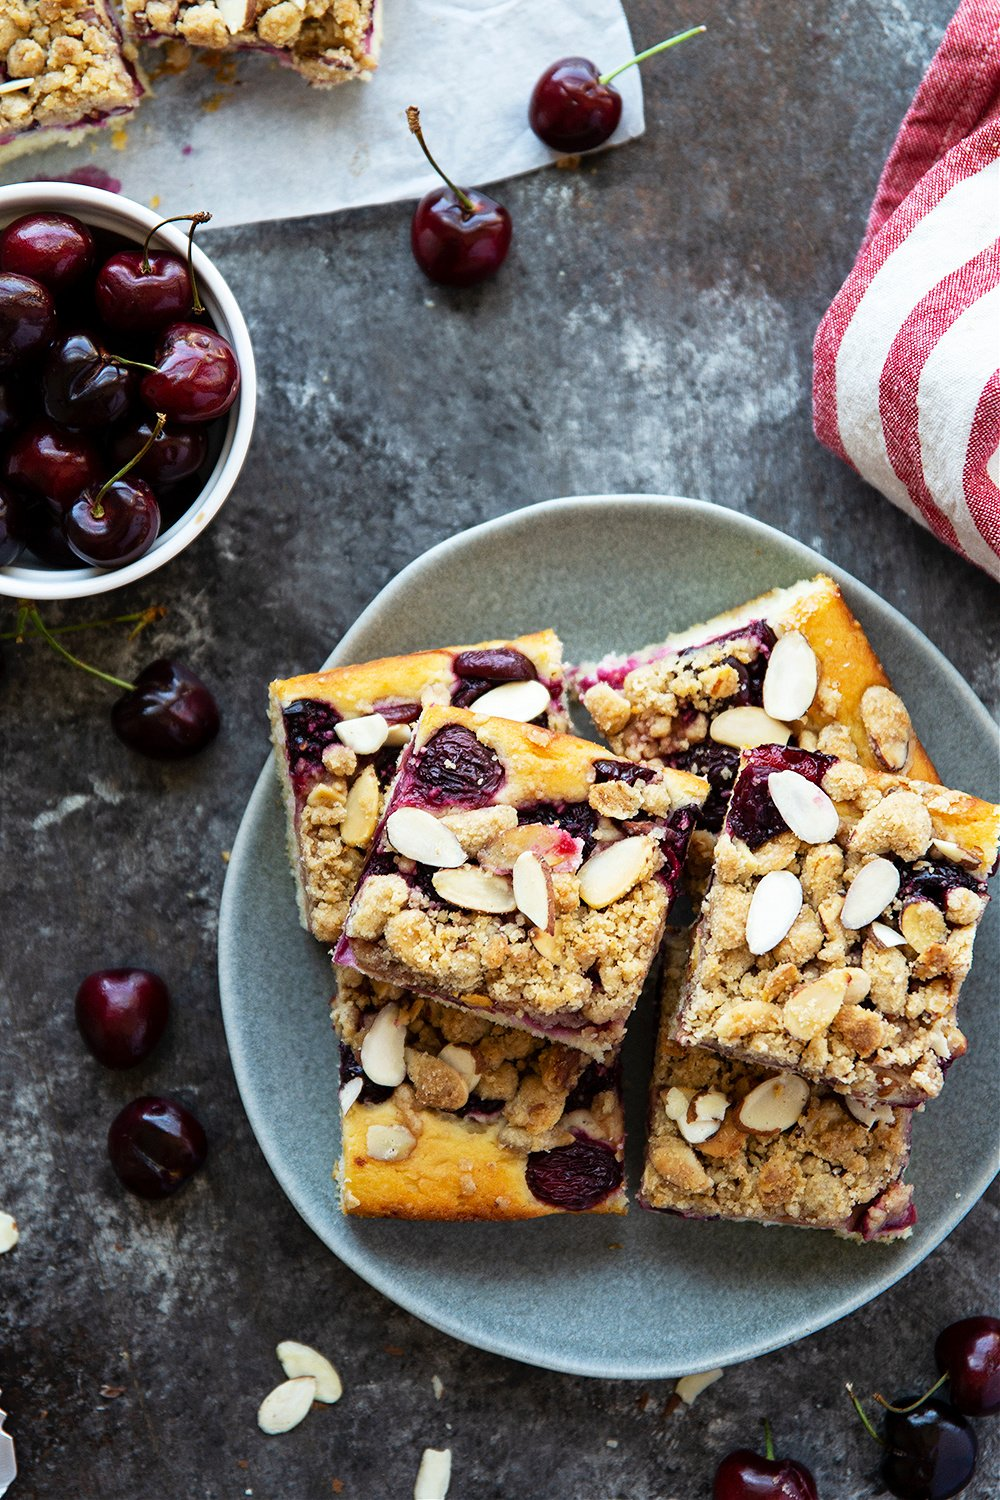 This almond cherry buckle features a soft buttermilk almond cake, a juicy sweet cherry filling, and a buttery almond streusel topping. - the best cake to make with in-season cherries!